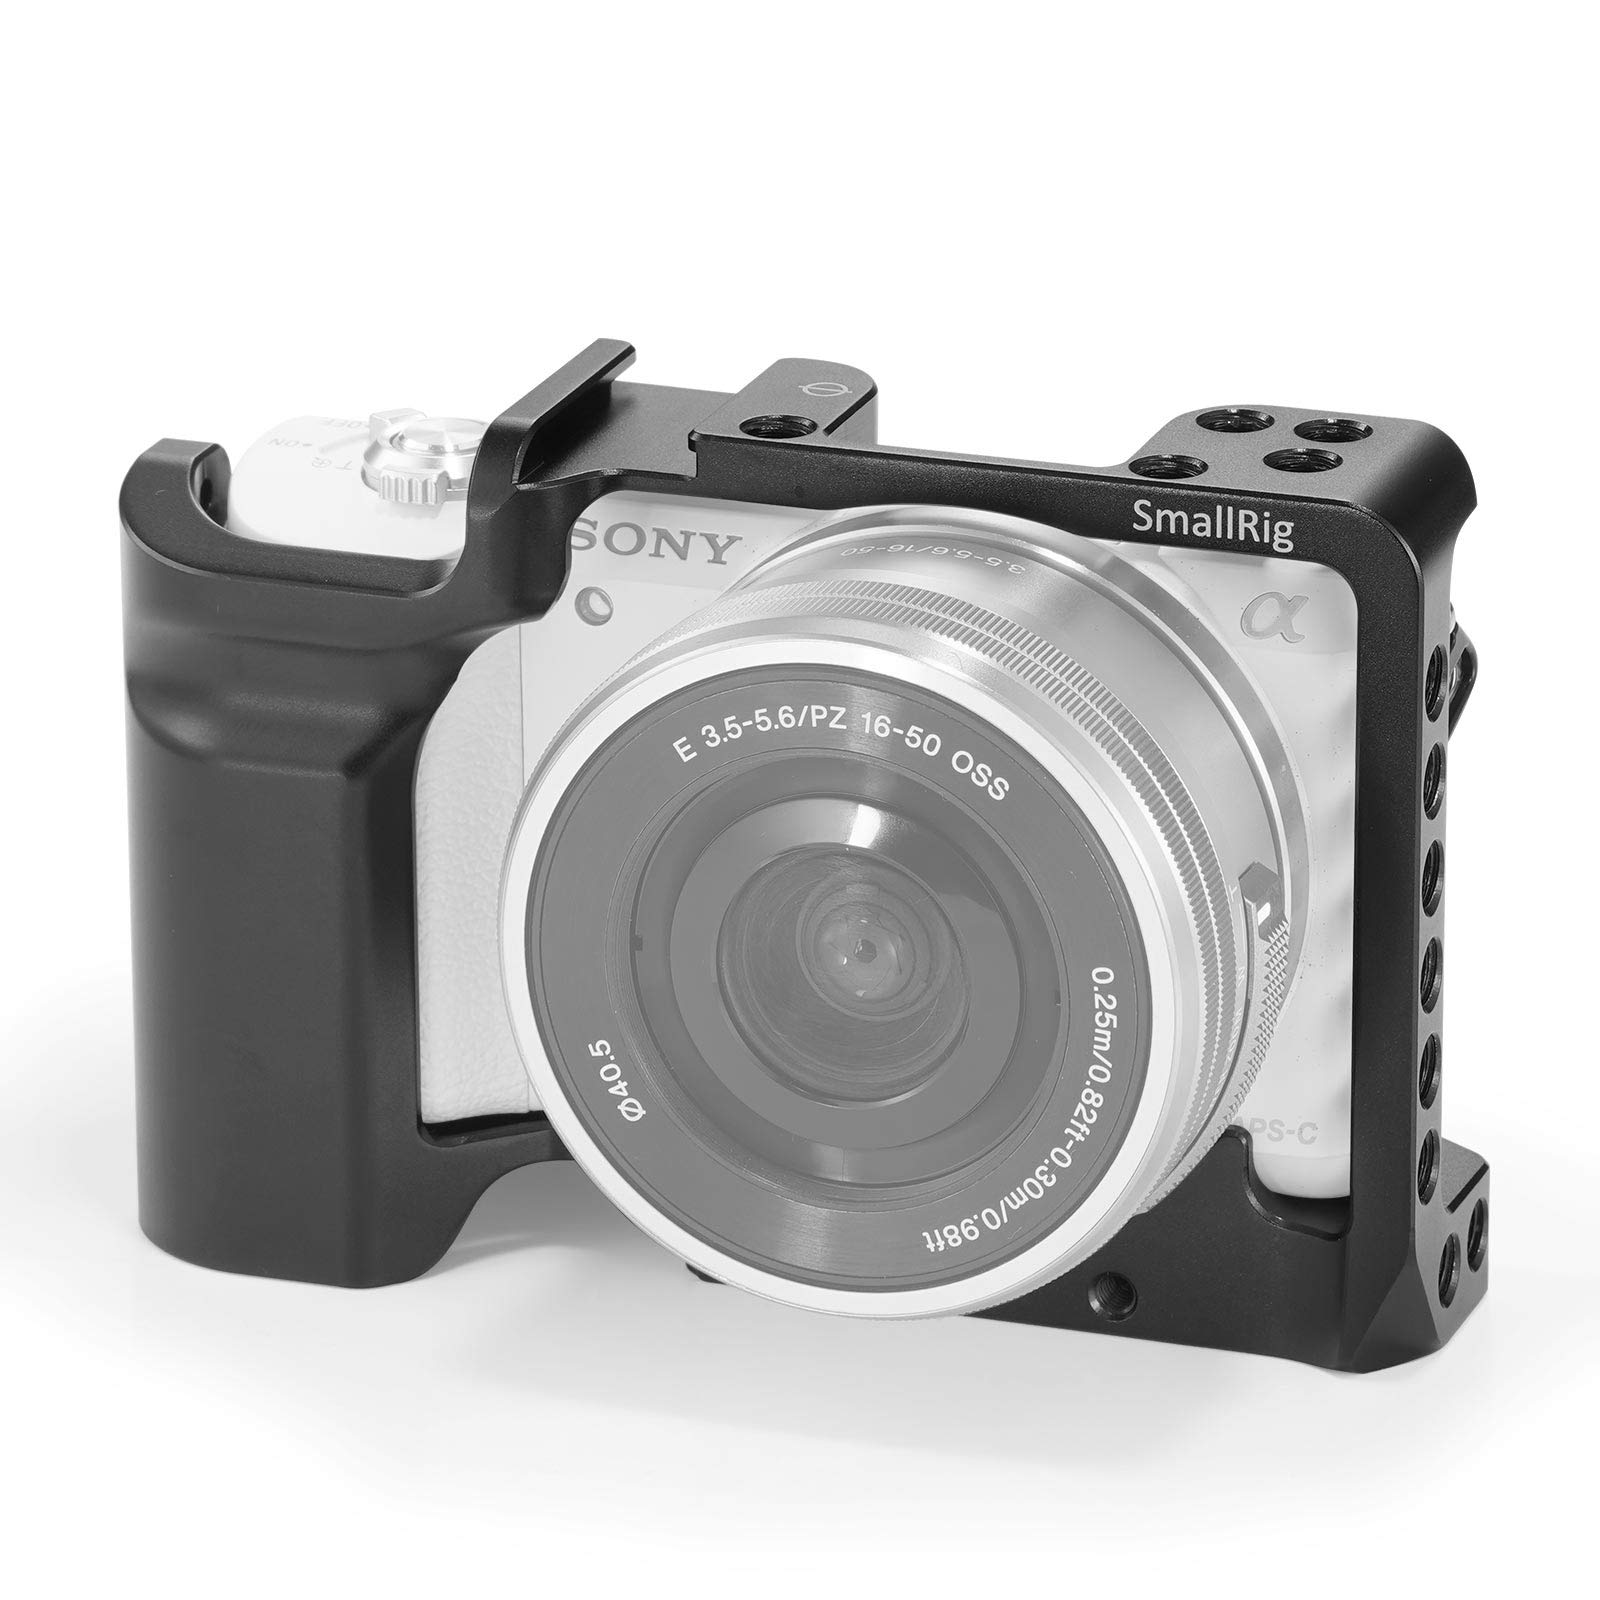 Smallrig 2226 Camera Cage Compatible With Sony A5000 / A5...